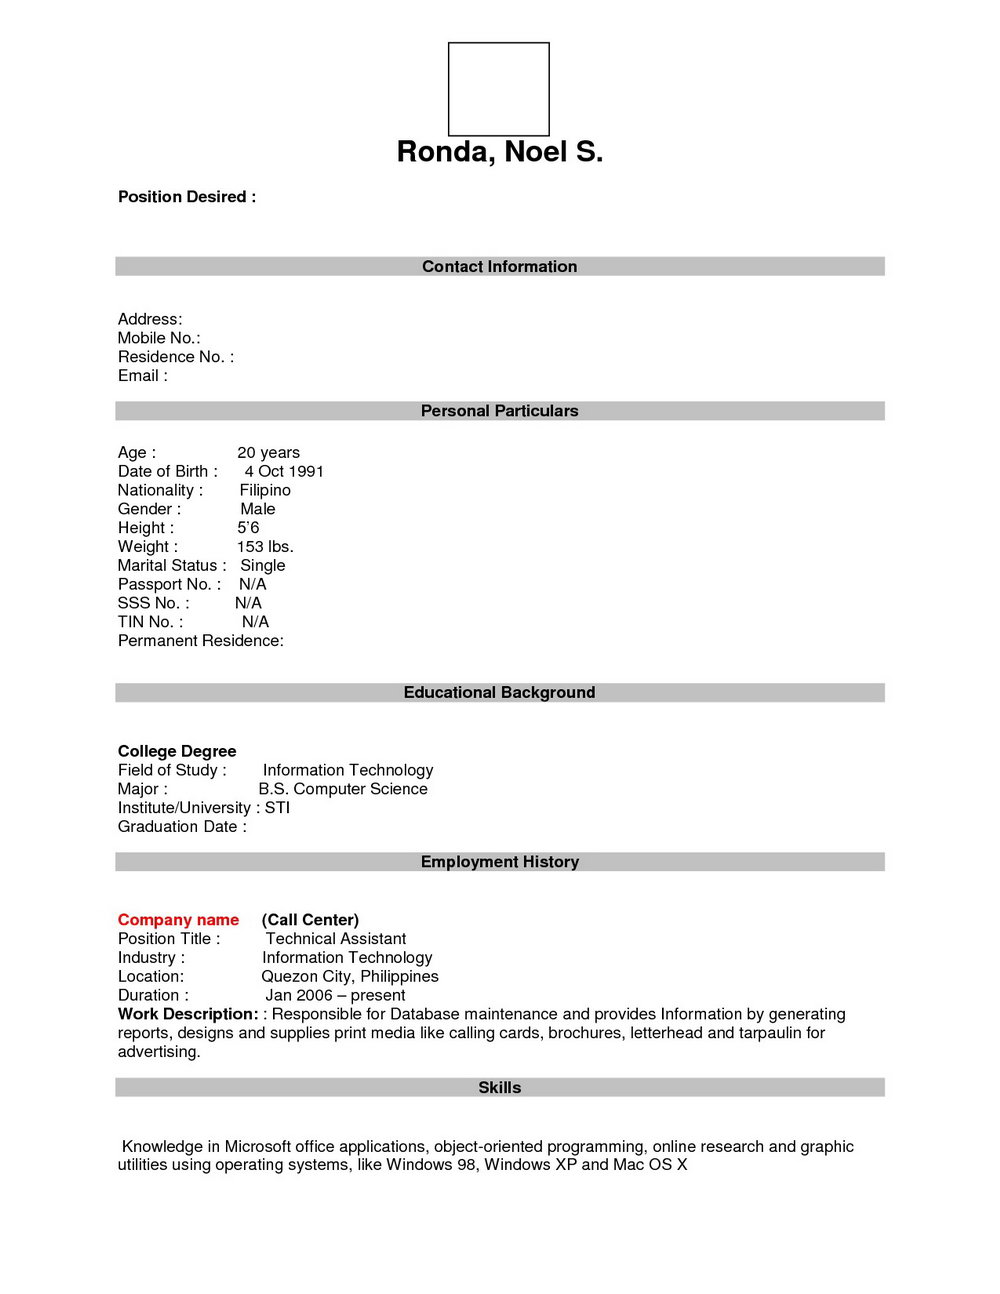 Blank Resume Template Download